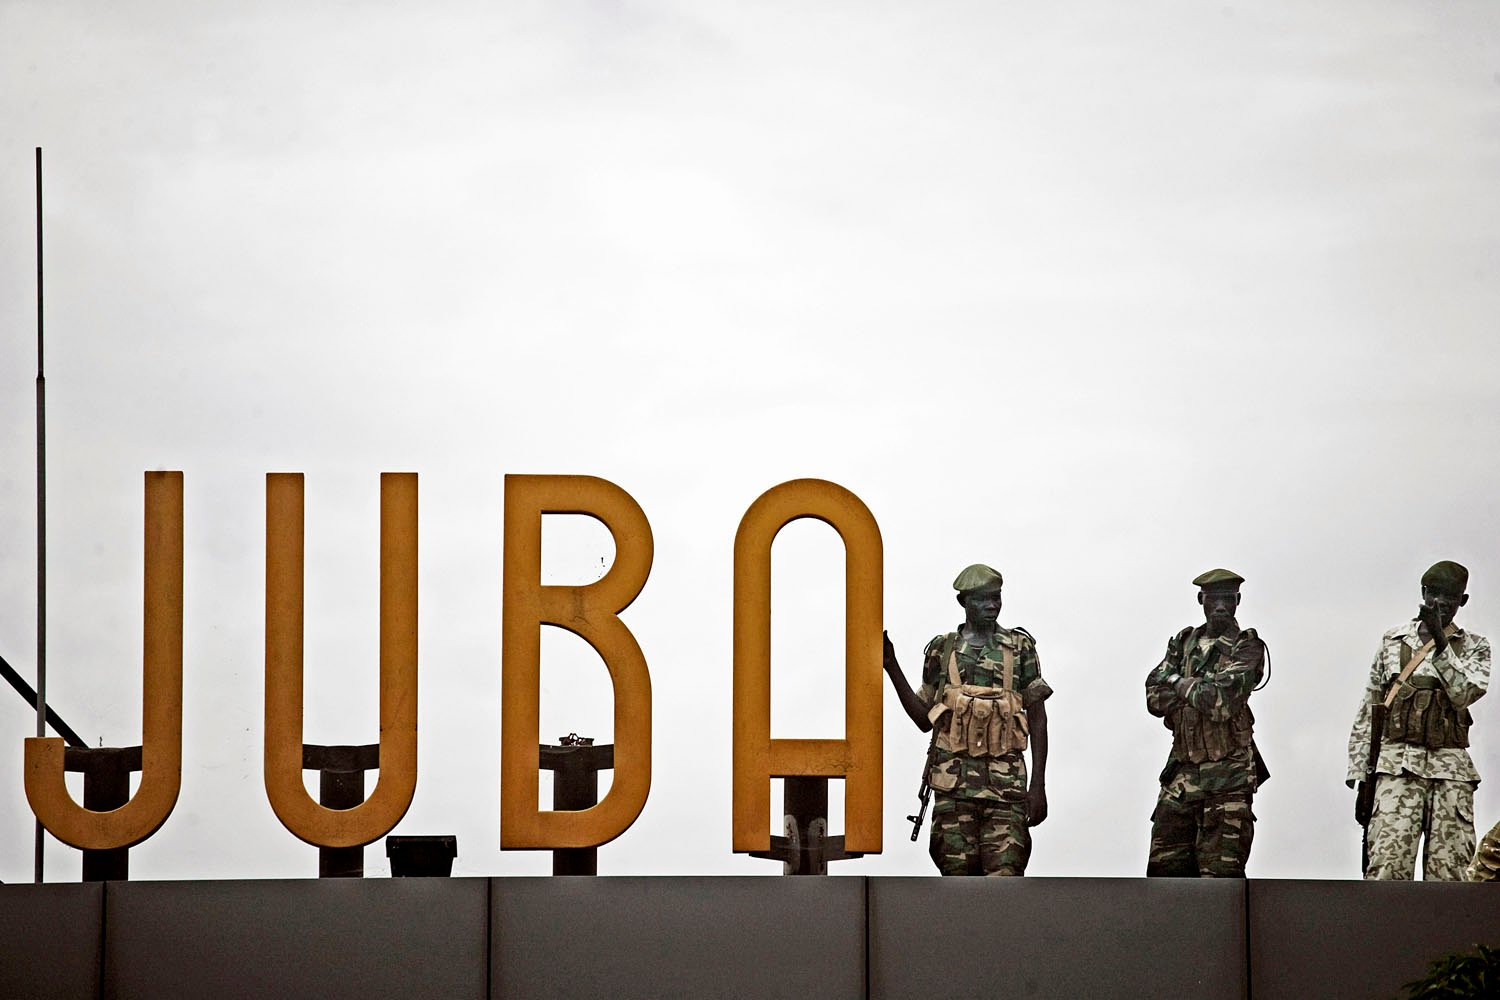 Southern soldiers stand guard on the roof of the airport in Juba, southern Sudan's defacto capital city.